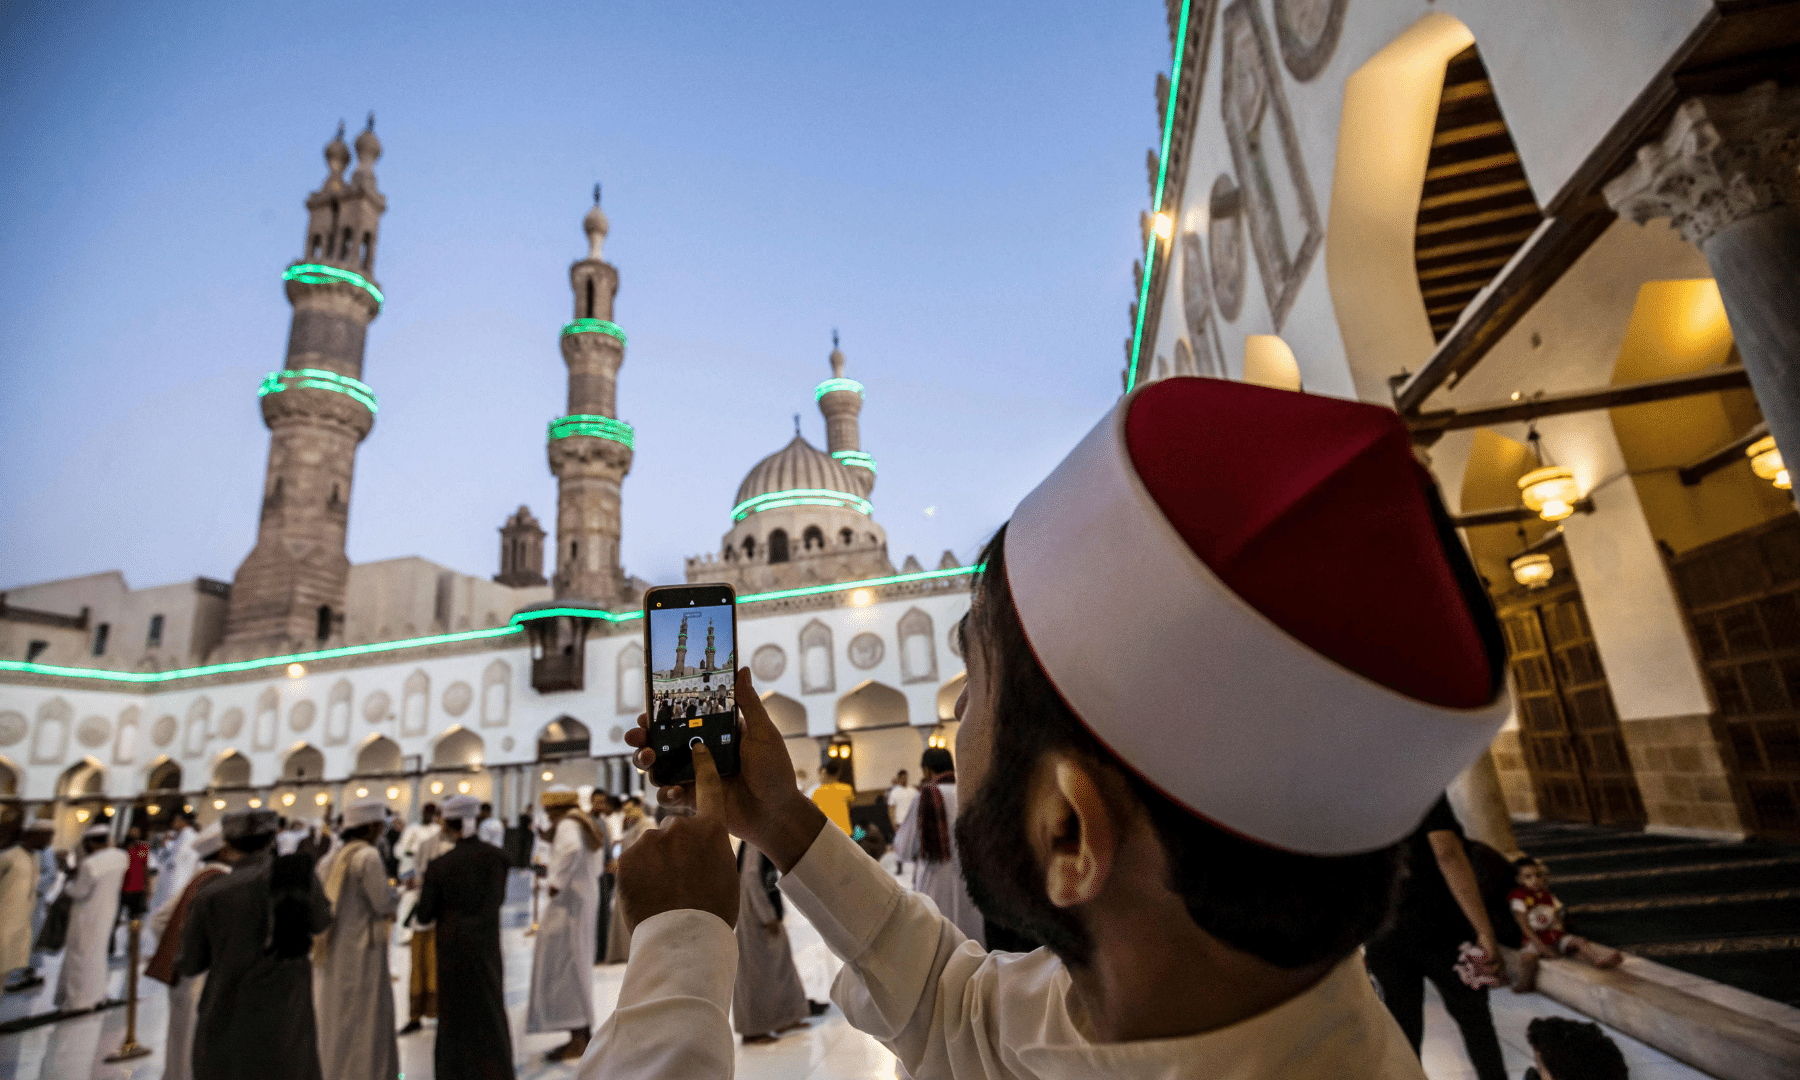 A Muslim worshipper takes pictures during Eidul Fitr prayers at al-Azhar mosque in the Egyptian capital Cairo. — AFP